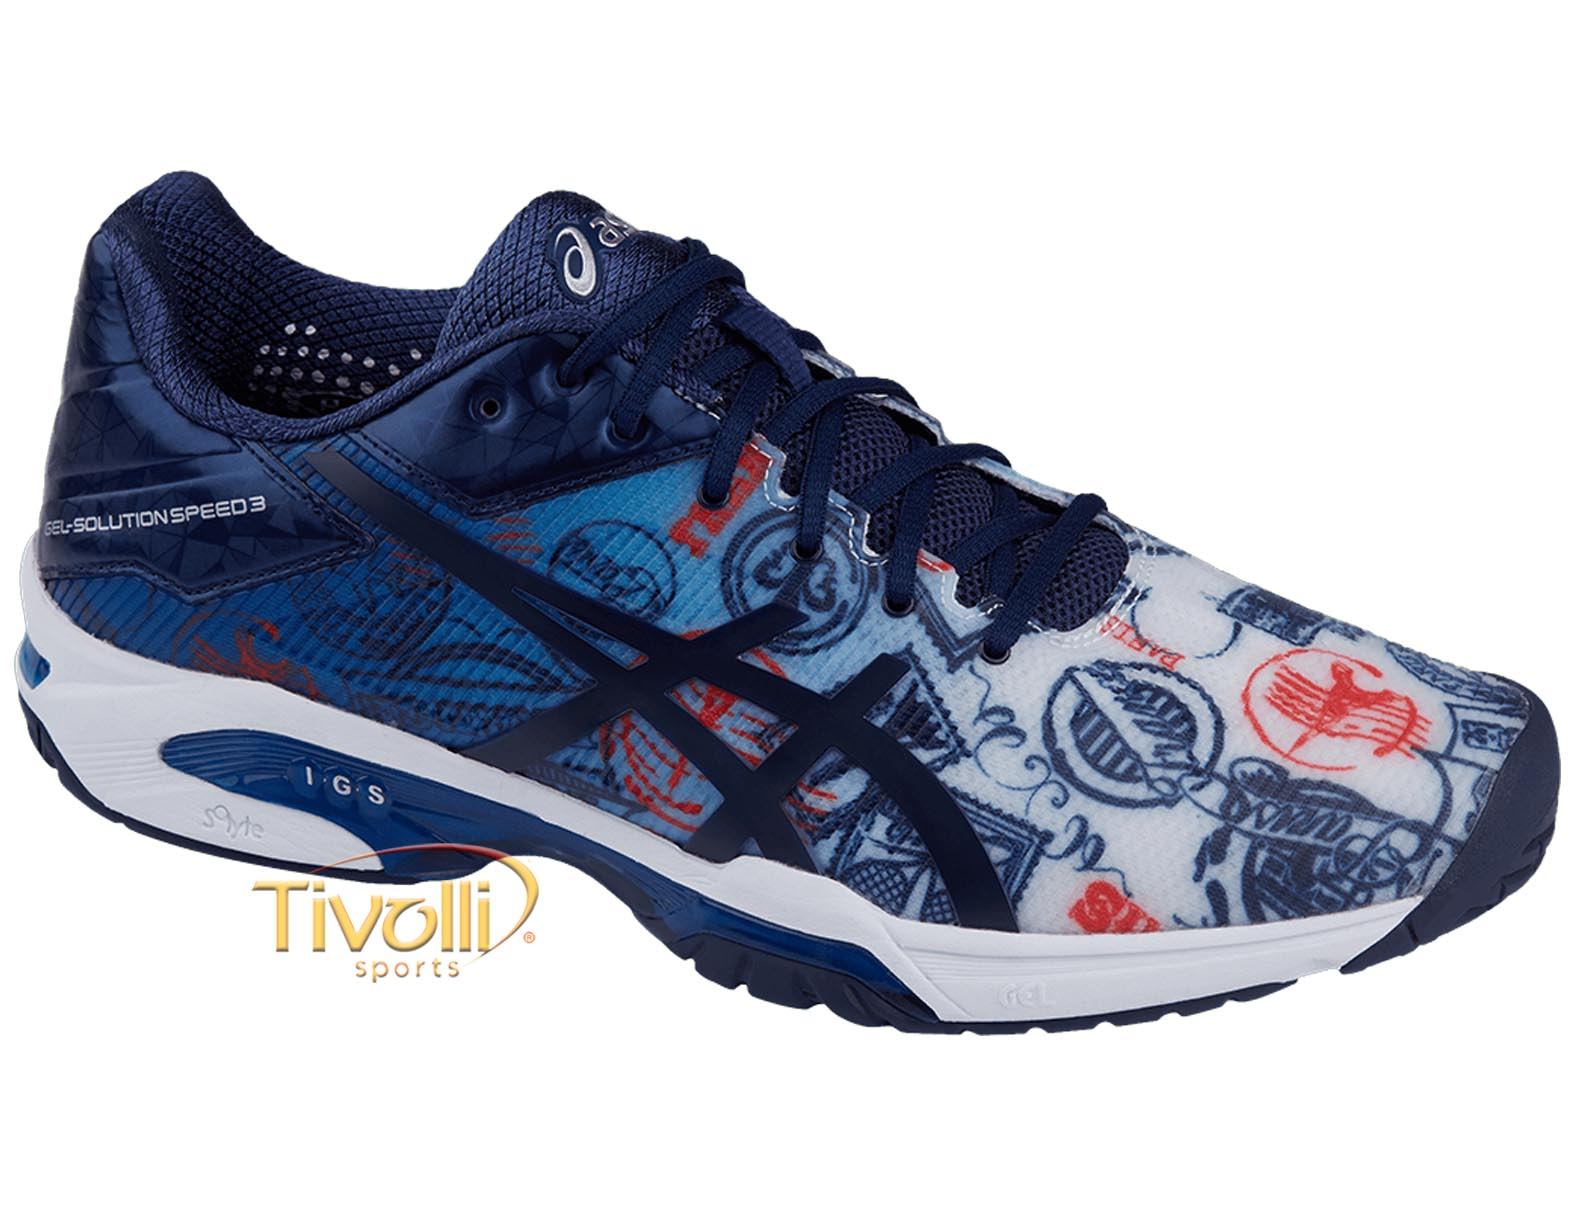 Tênis Asics Gel Solution Speed 3 L.E Paris